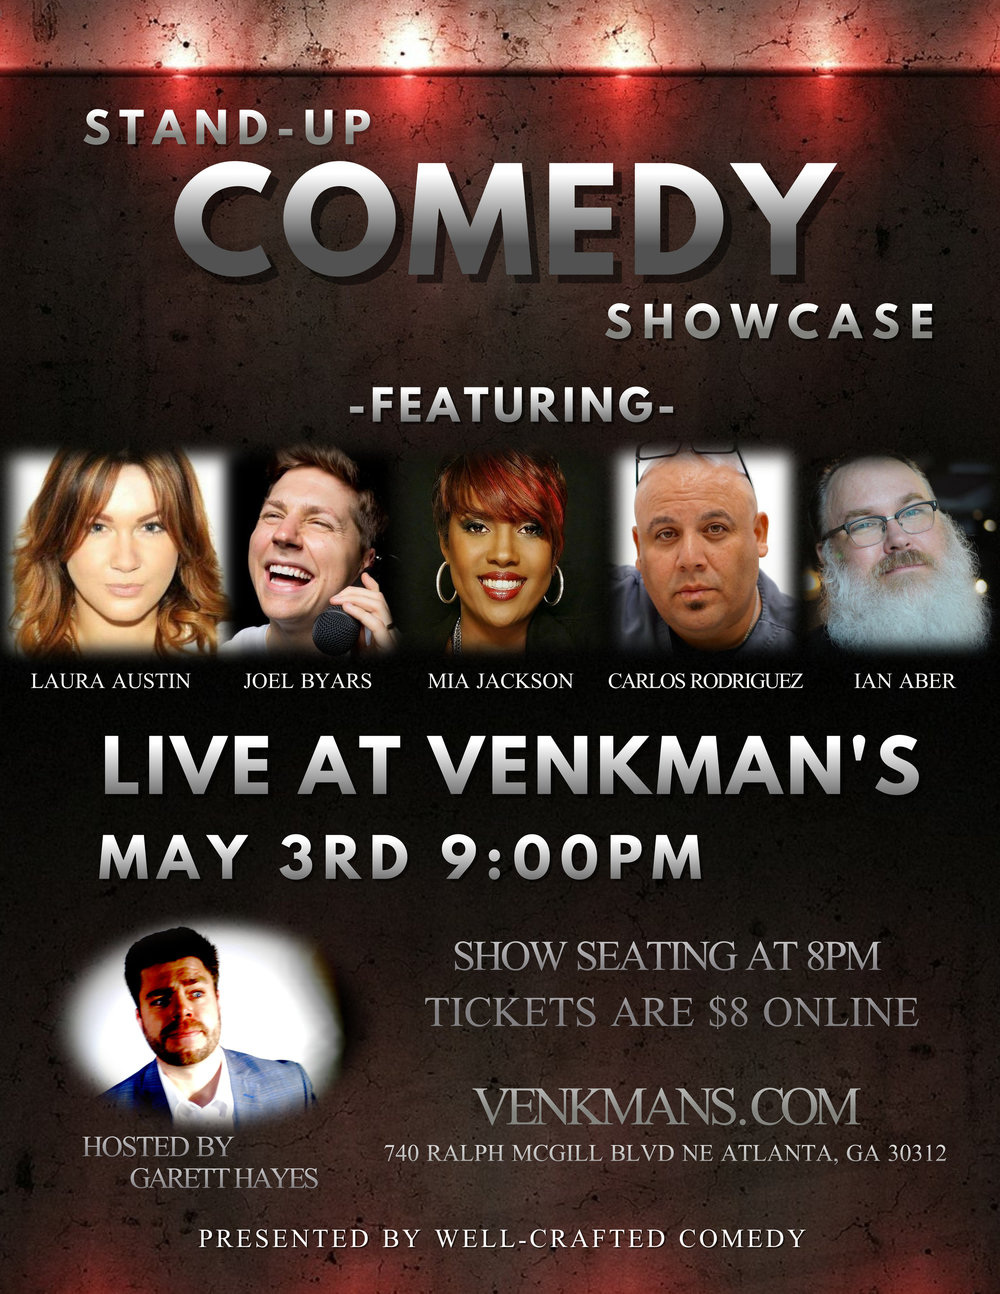 Well-Crafted Comedy at Venkman's on May 3rd, 2018